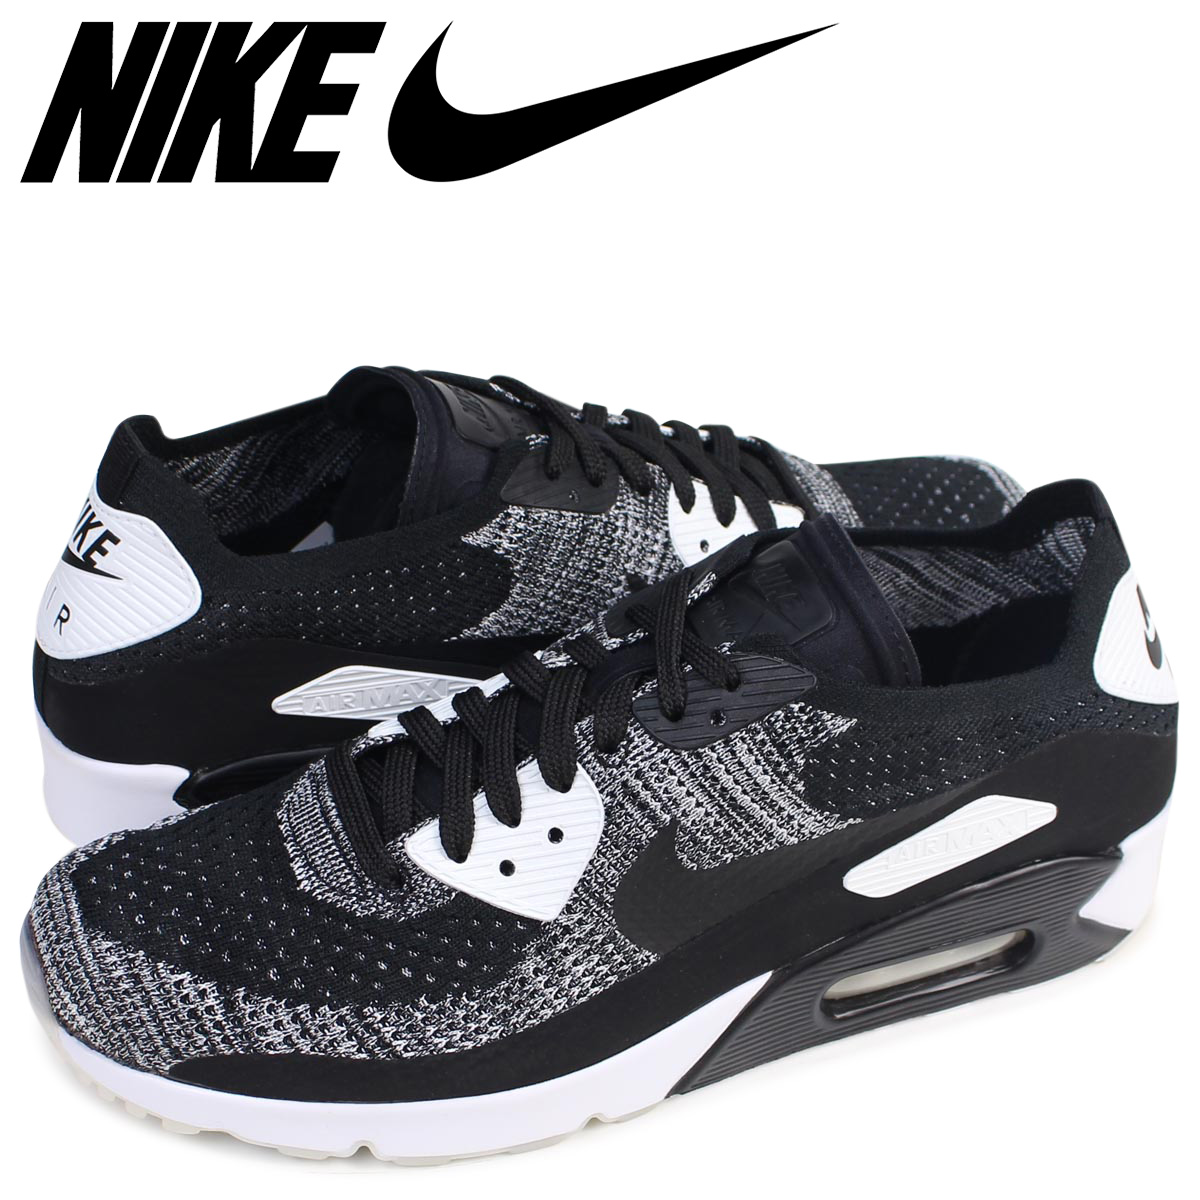 4a37c6d91d Whats up Sports: Nike NIKE Air Max 90 ultra fly knit sneakers AIR MAX 90  ULTRA 2.0 FLYKNIT 875,943-001 men's shoes black [load planned Shinnyu load  in ...